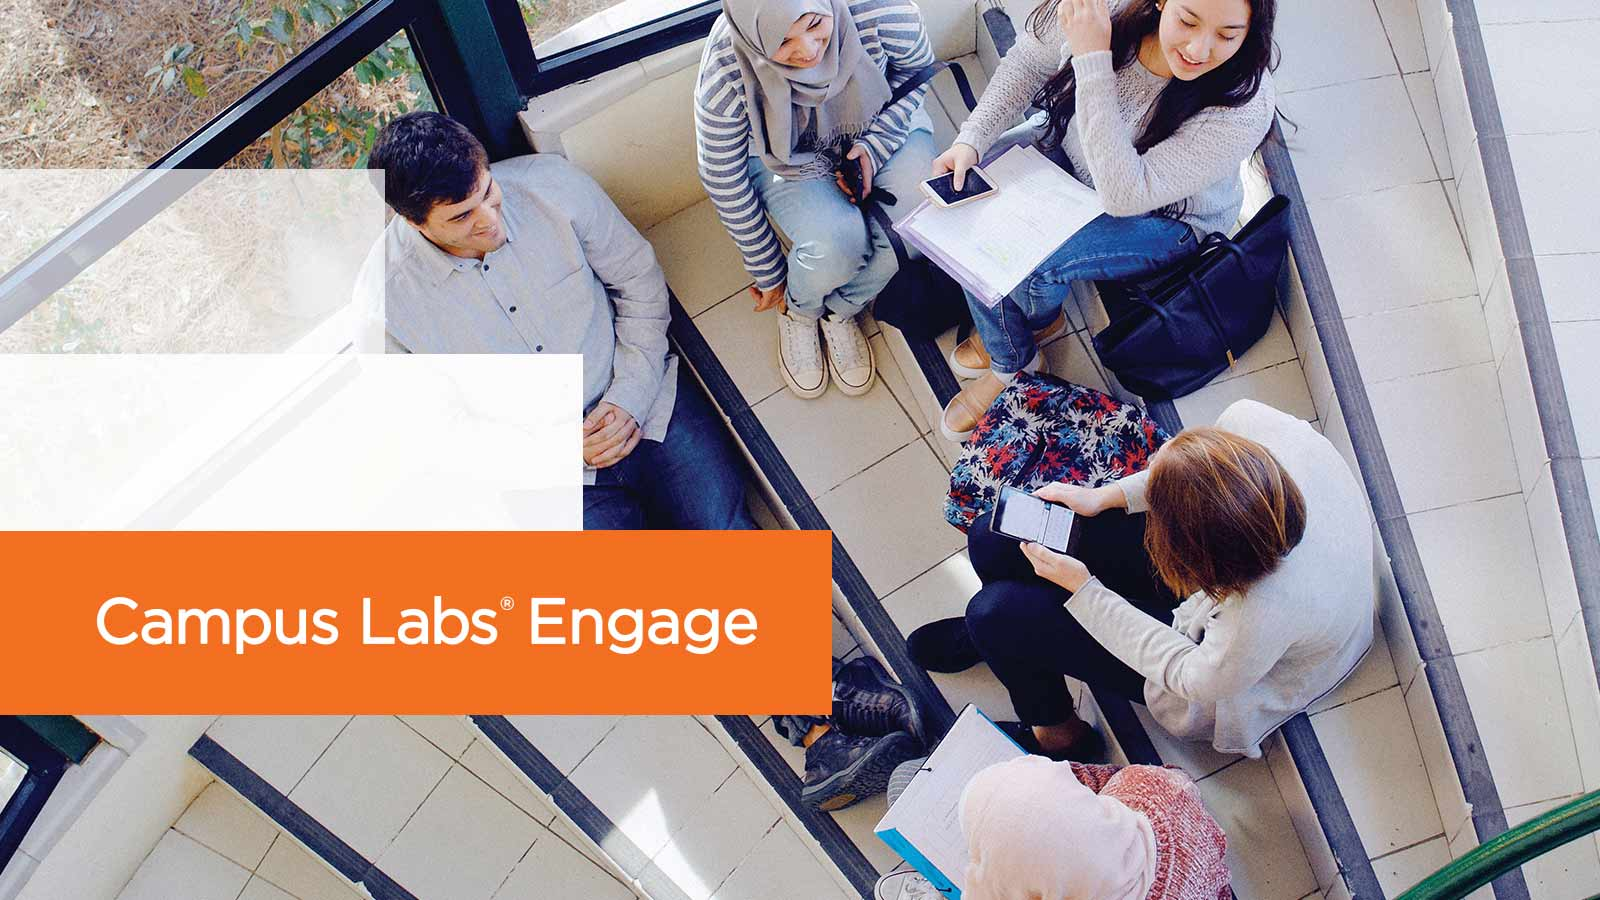 Introducing Campus Labs® Engage